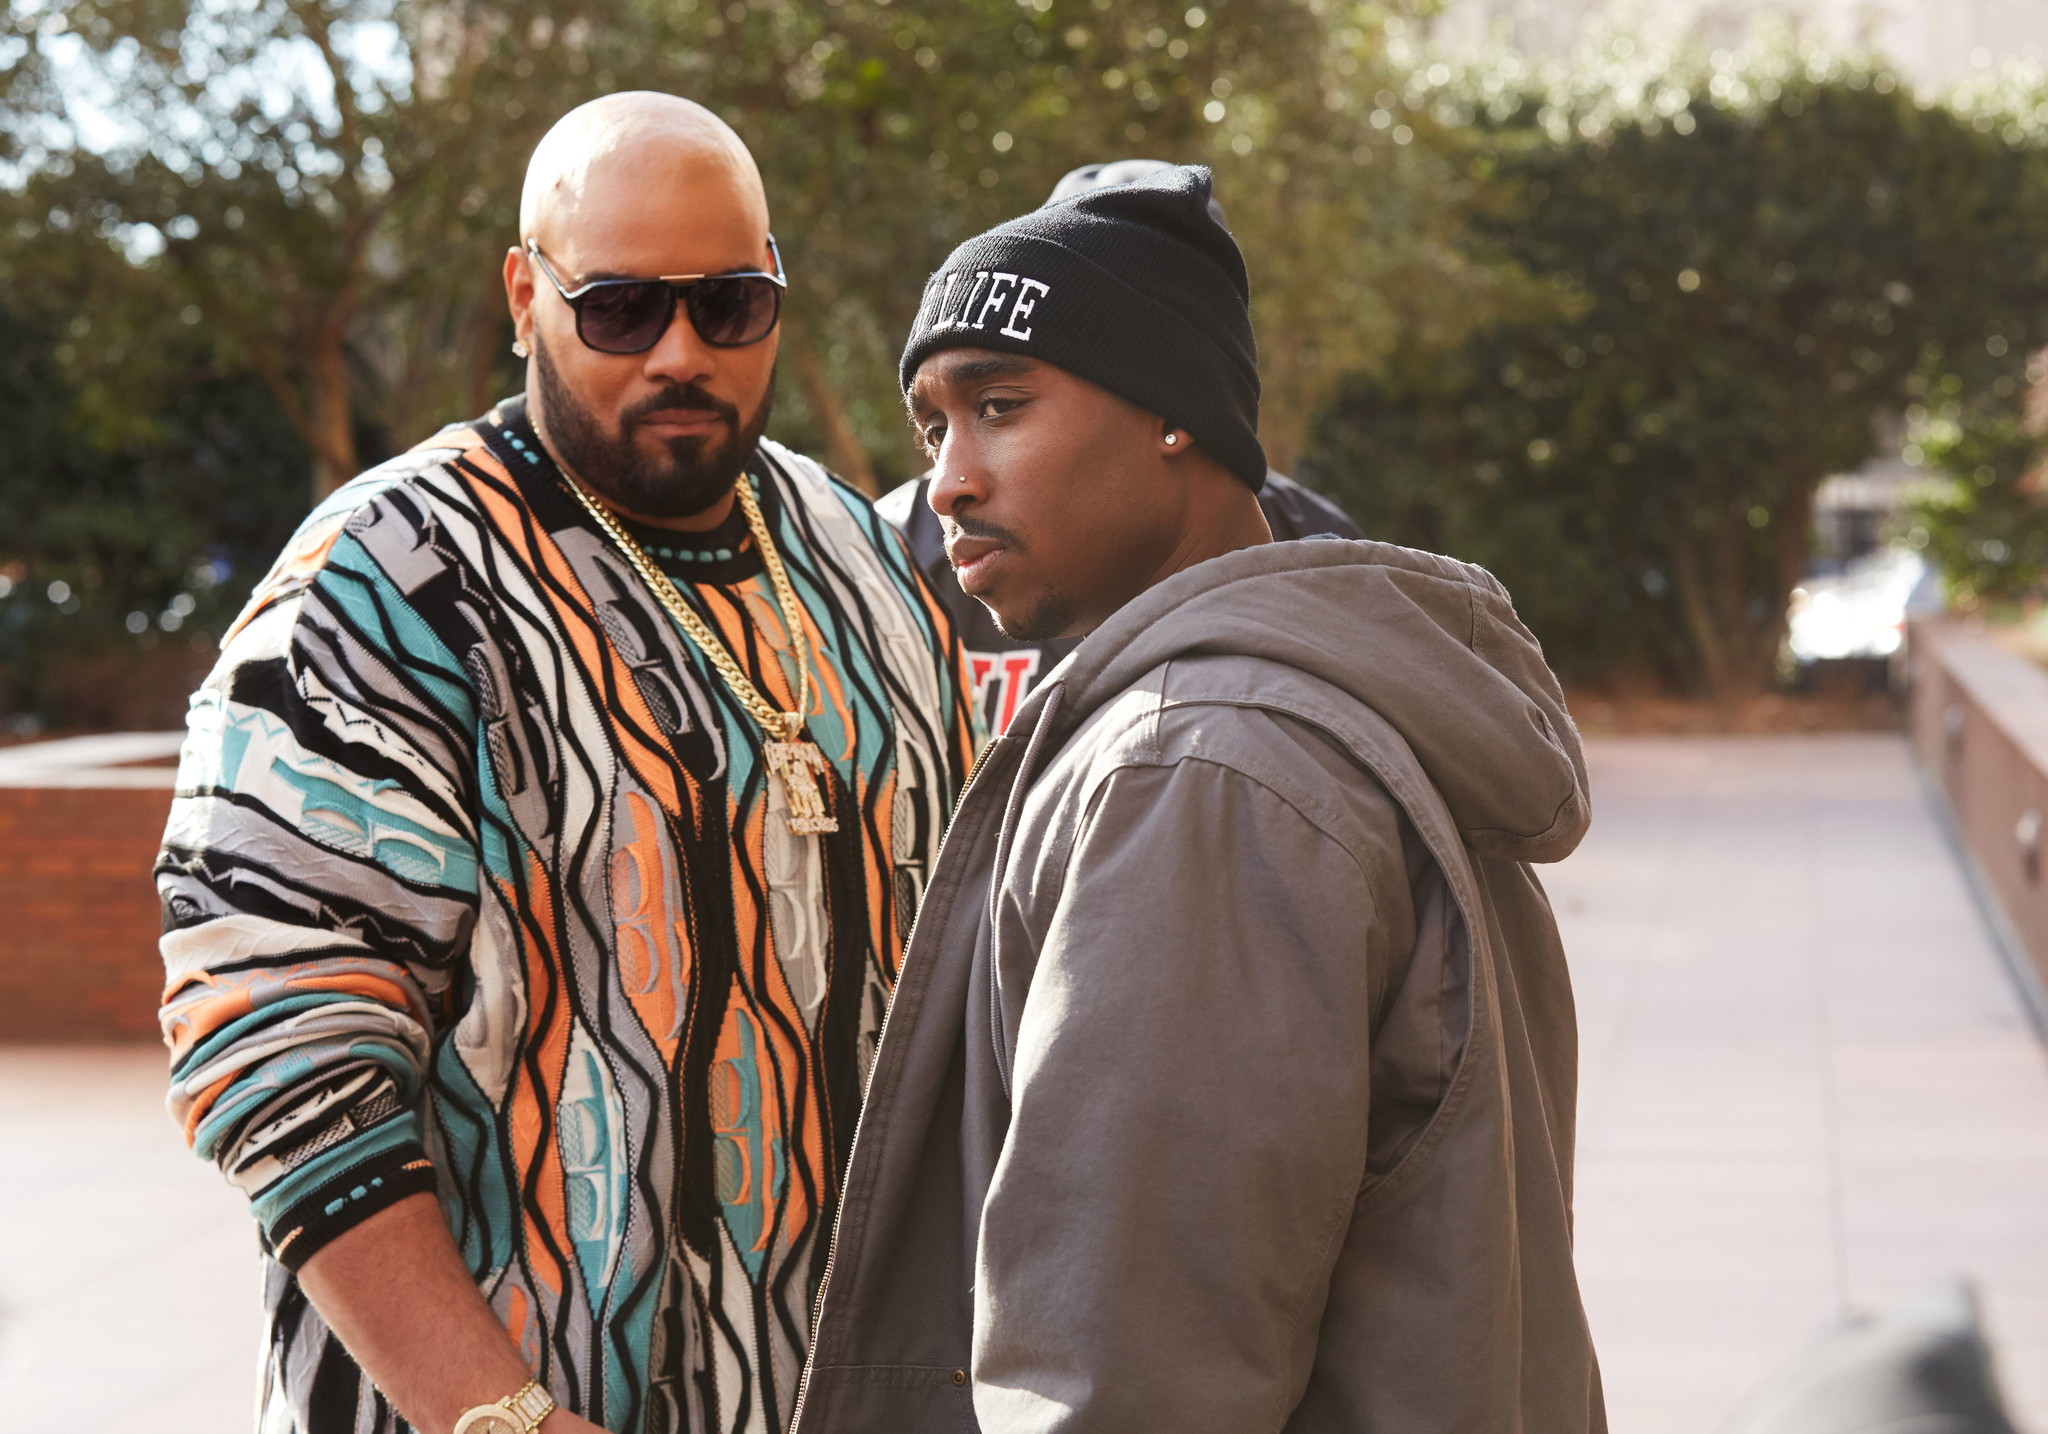 'All Eyez On Me' Tupac Biopic Exceeded Expectations During Opening Weekend la 1497820796 lps5wr6ldi snap image